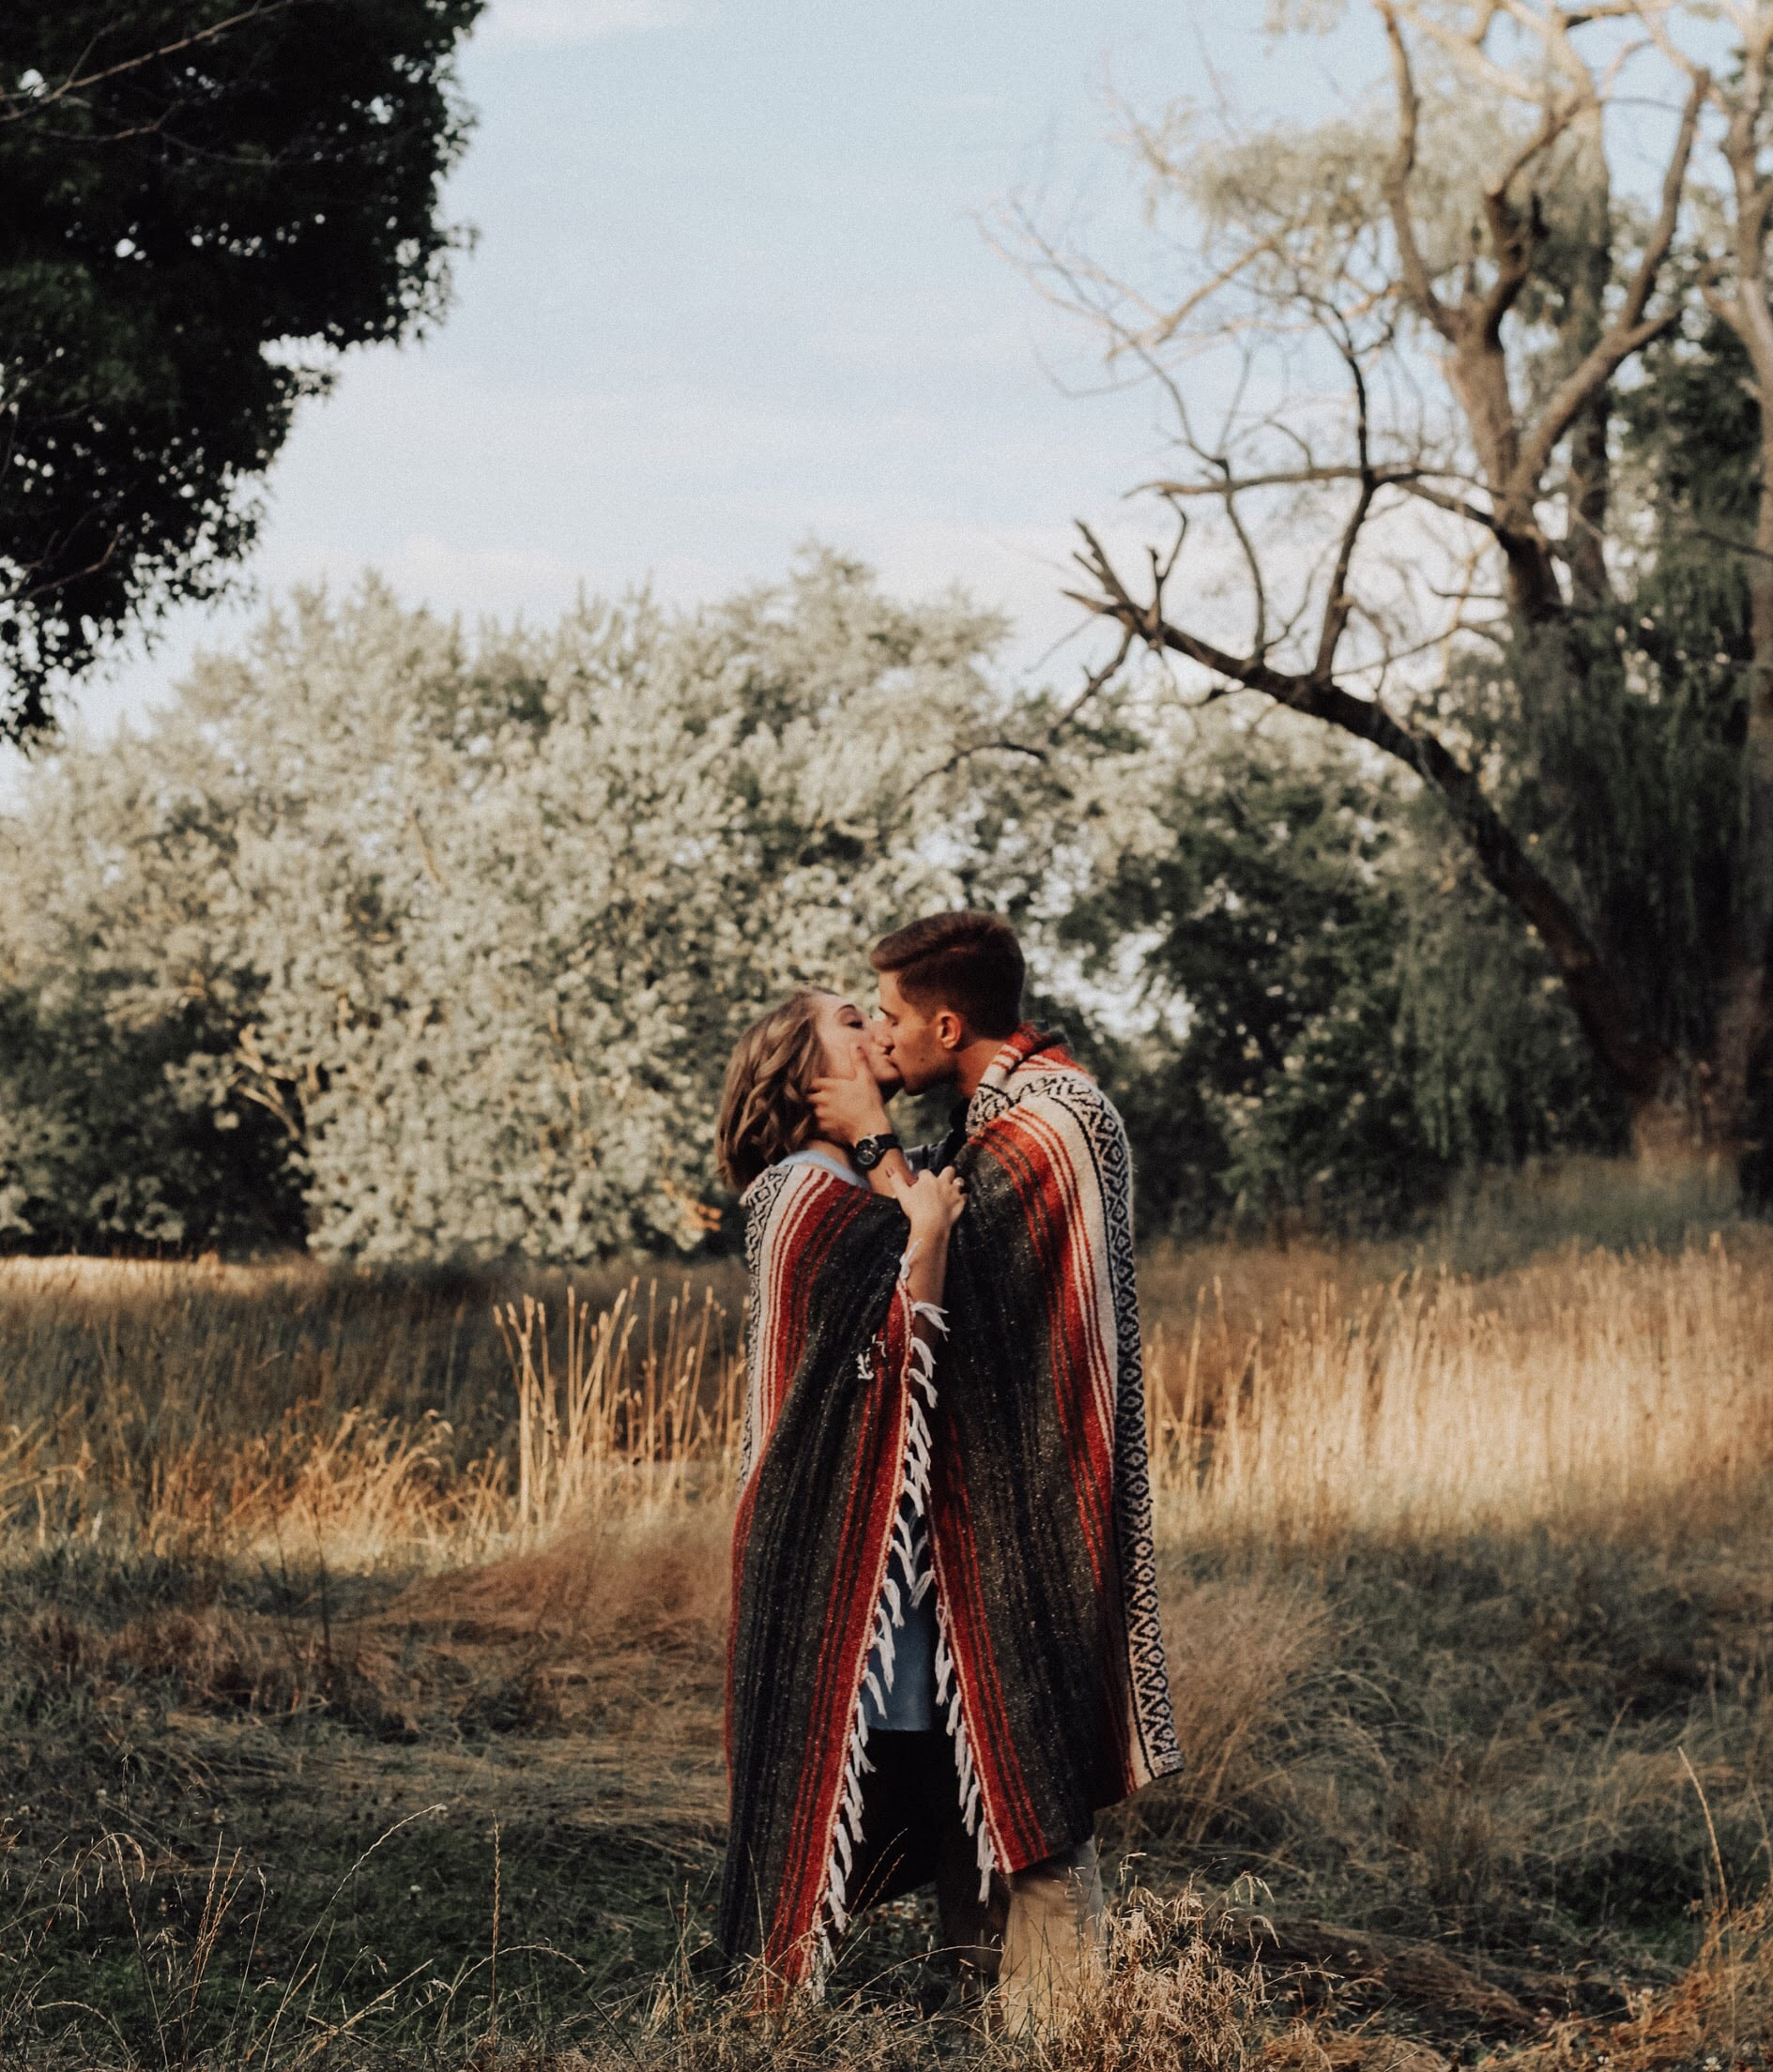 photo of man and woman kissing near brown bare tree